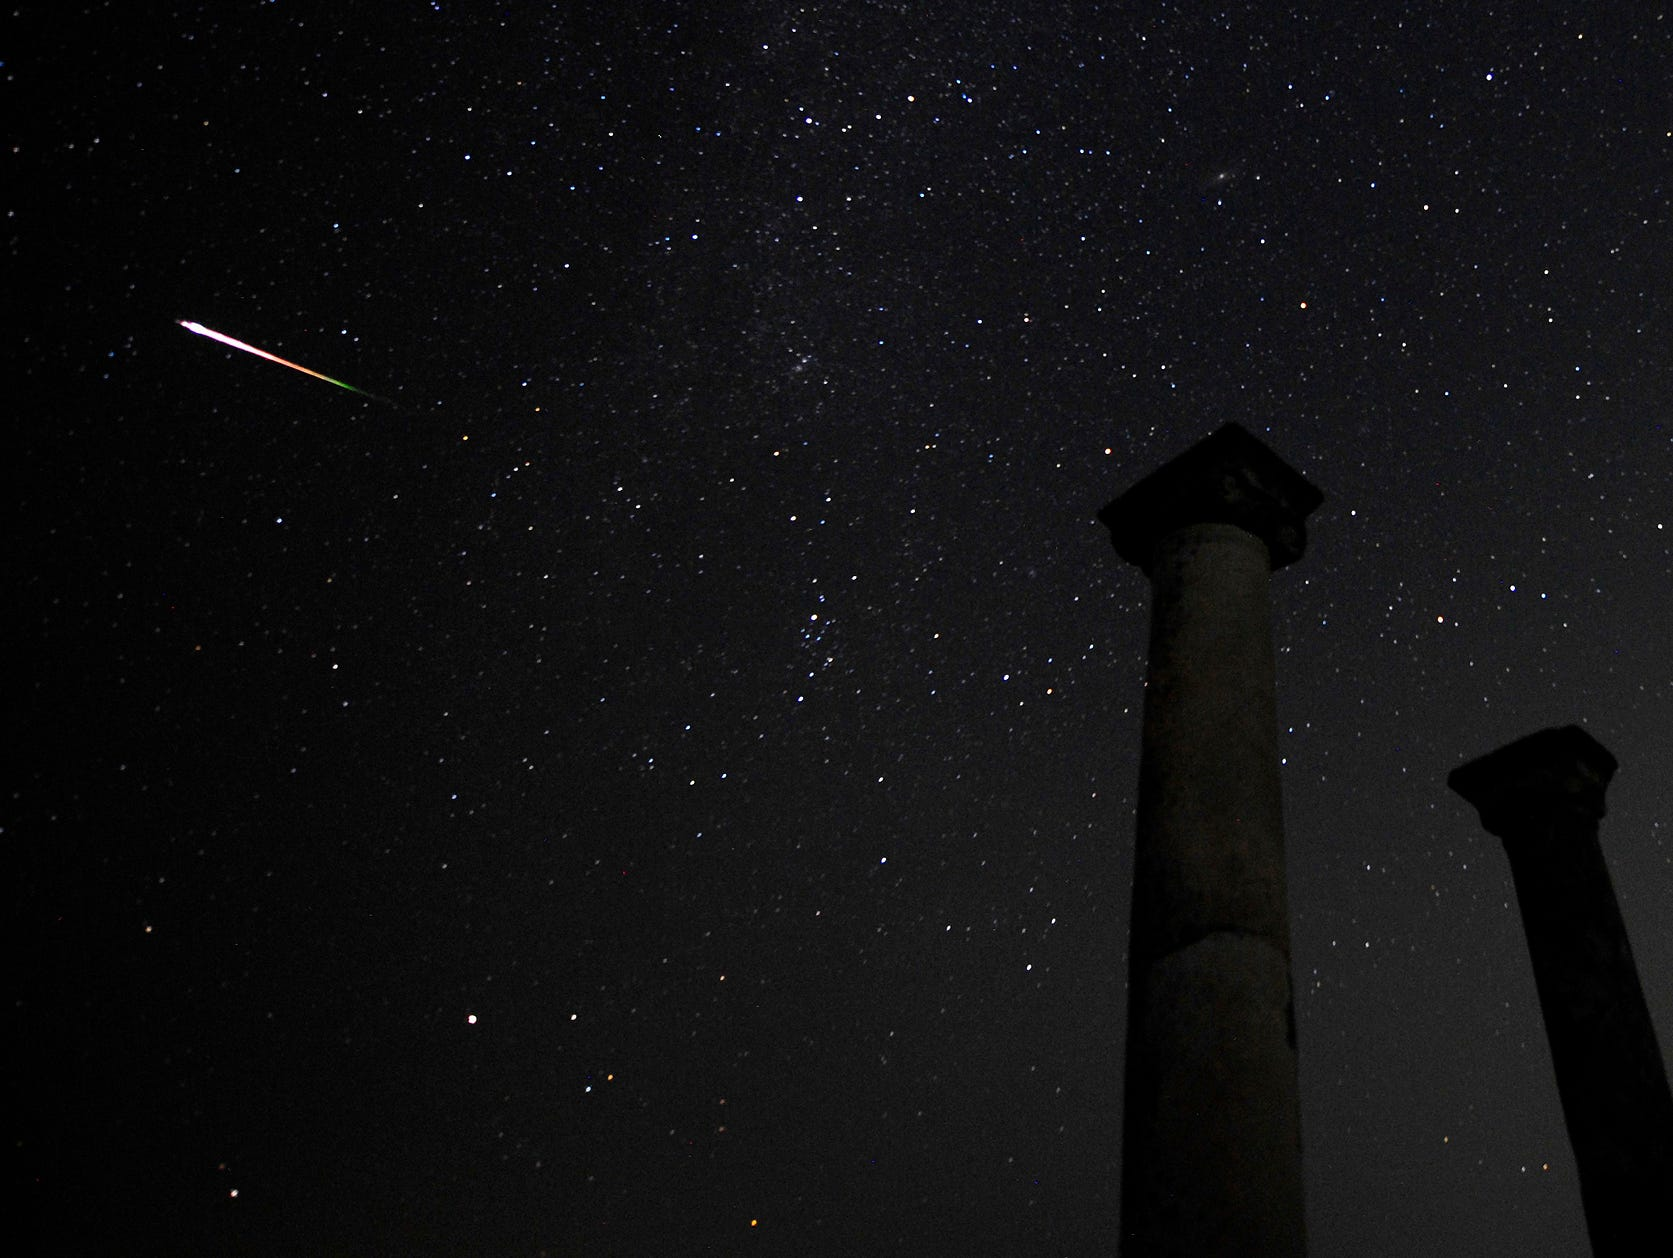 A meteor streaks across the sky above the Stobi archaeological site in Skopje, Macedonia.